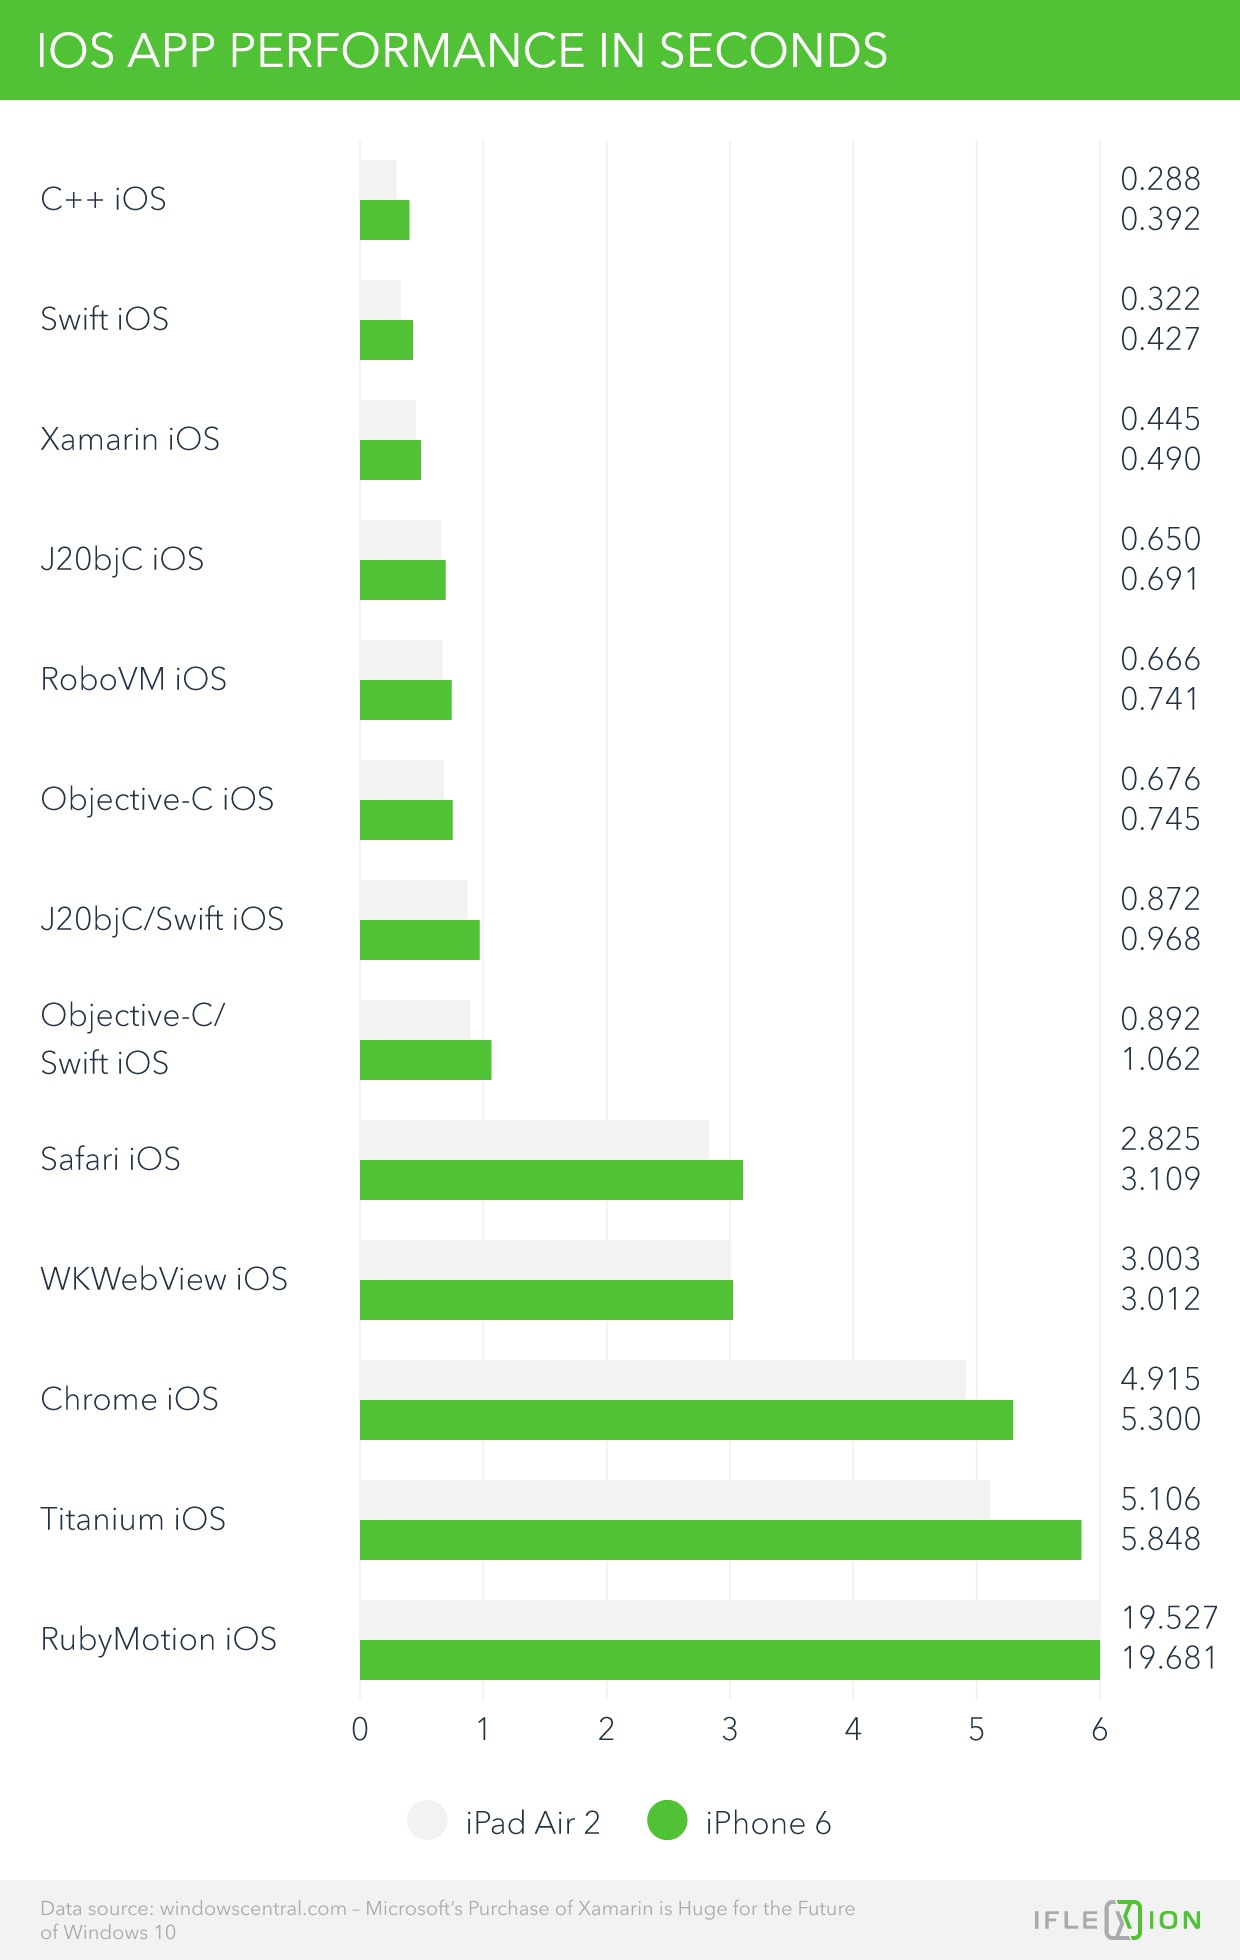 IOS App Performance in Seconds